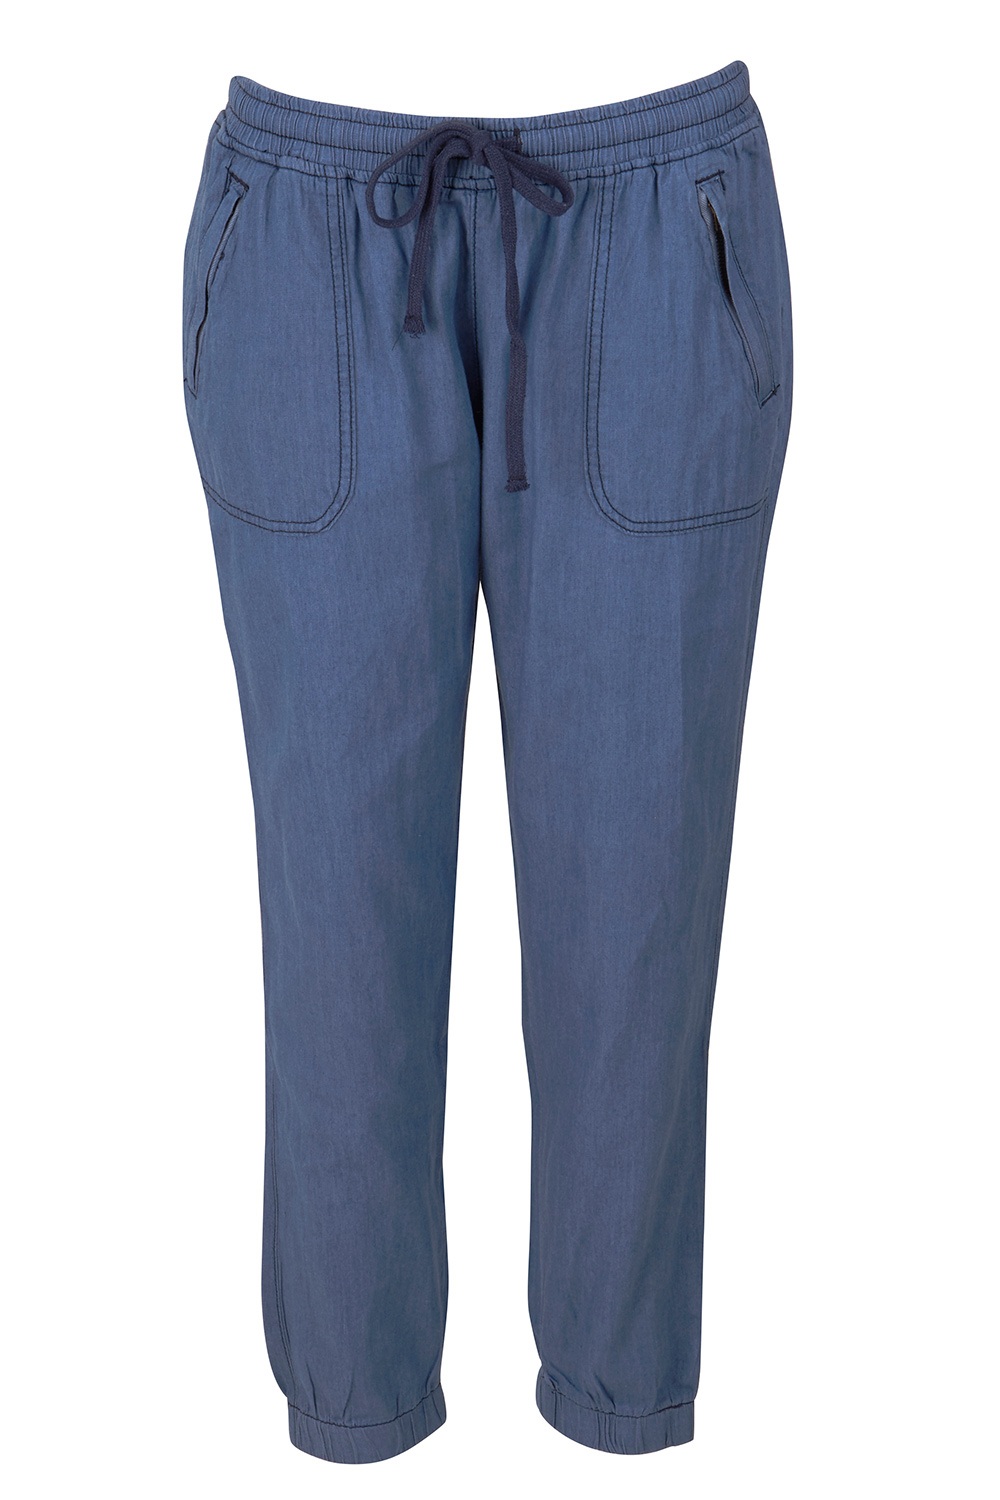 New bird keepers womens pants the chambray pant ebay for Chambray jeans